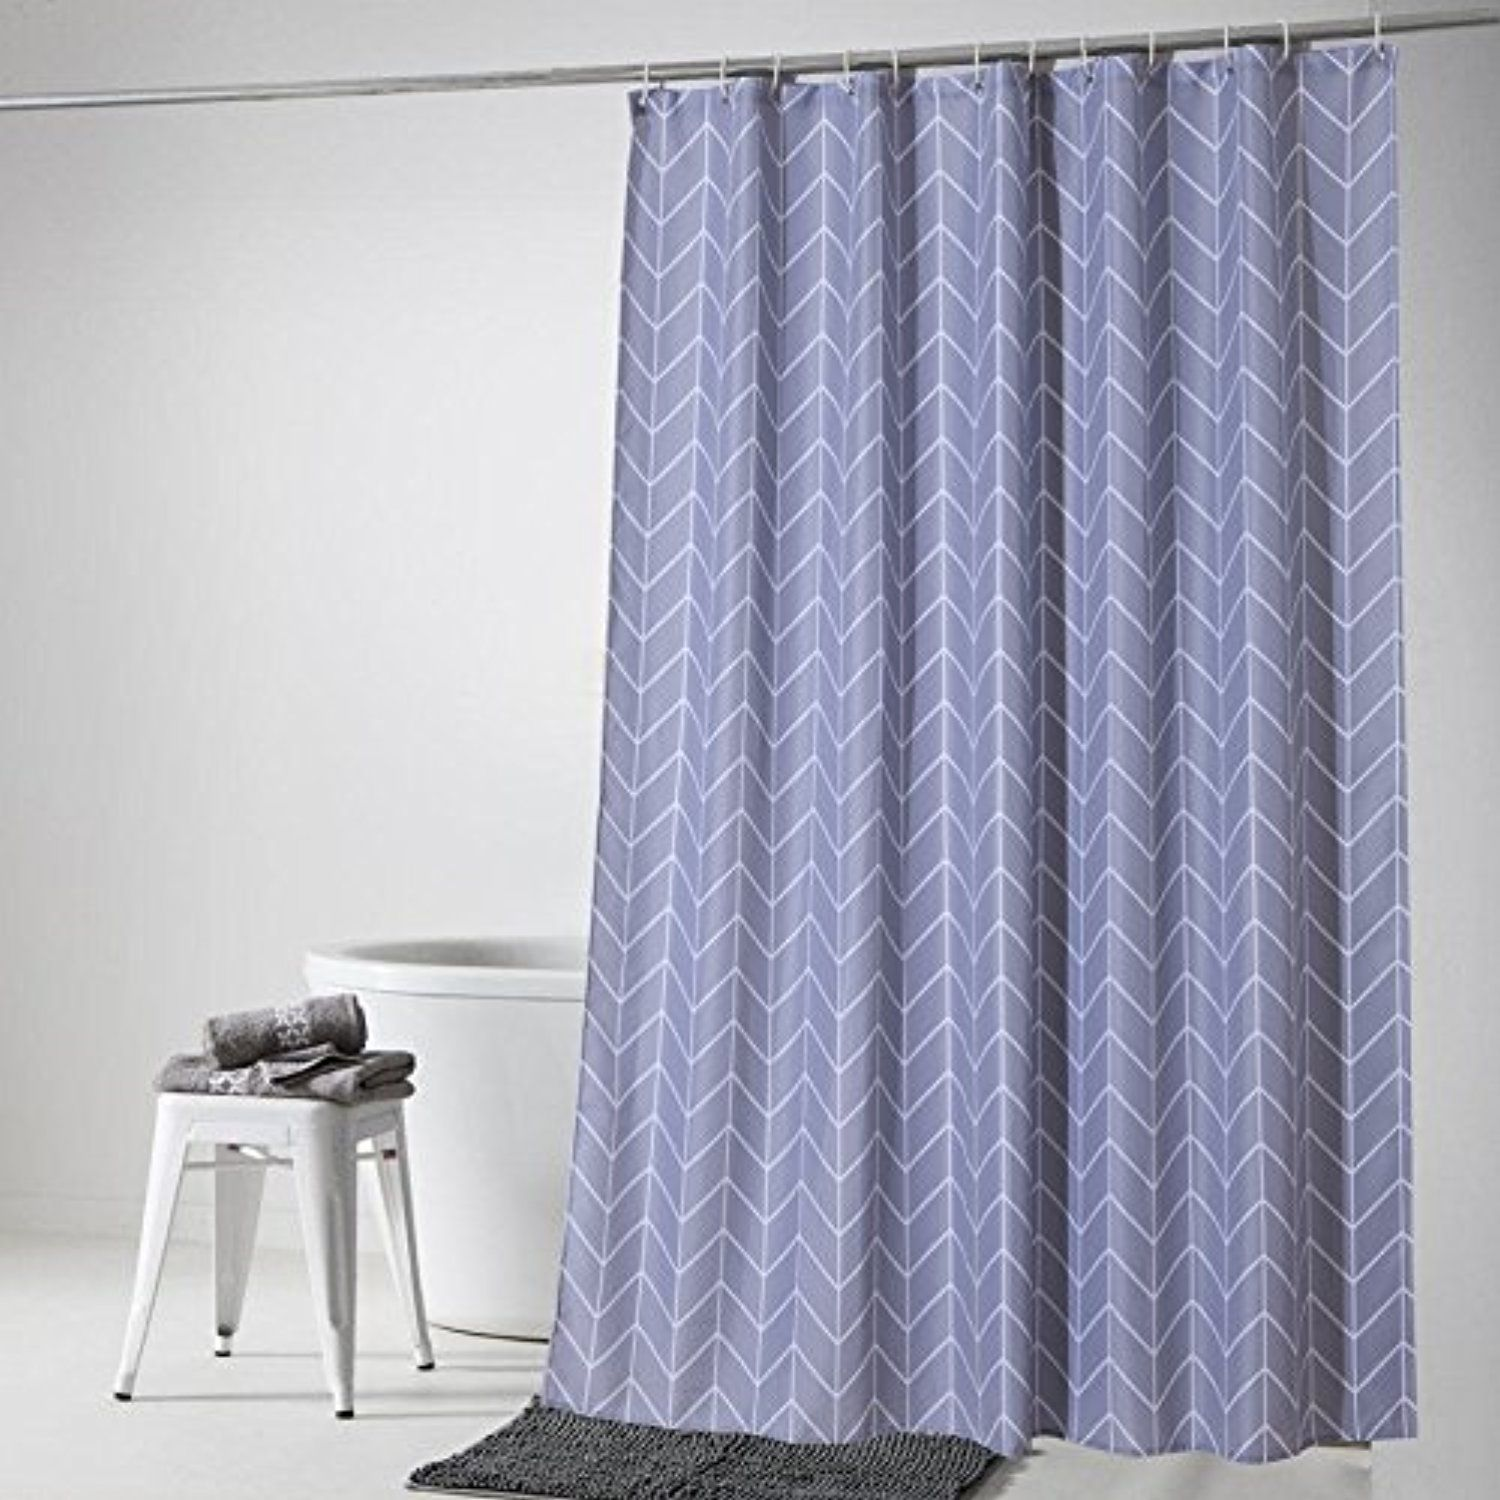 fabric sofa netting inspirational of size full ideas stall awesome curtains shower with mercial curtain x